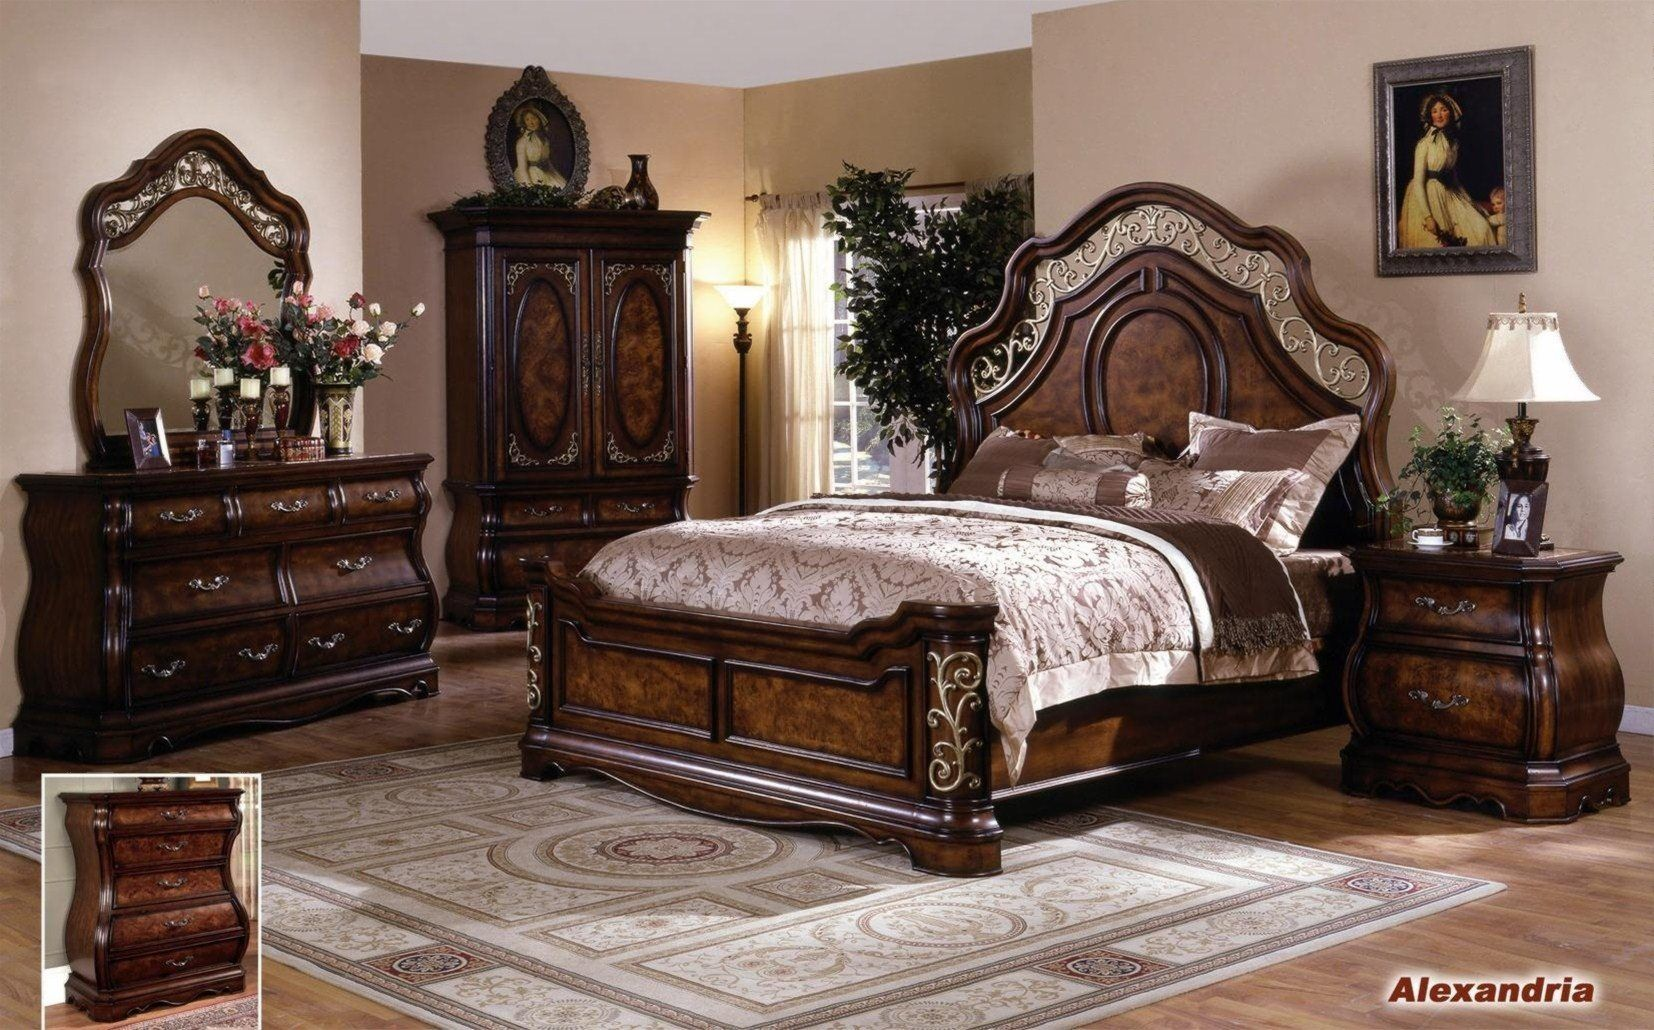 High Quality Dark Wood Bedroom Furniture 5 King Size Bed The Michigan Collection    Bedroom Sleeps 8 9 Vacation Rental Big Bear Lake Family Home Private    Classic Bedroom ... Design Inspirations